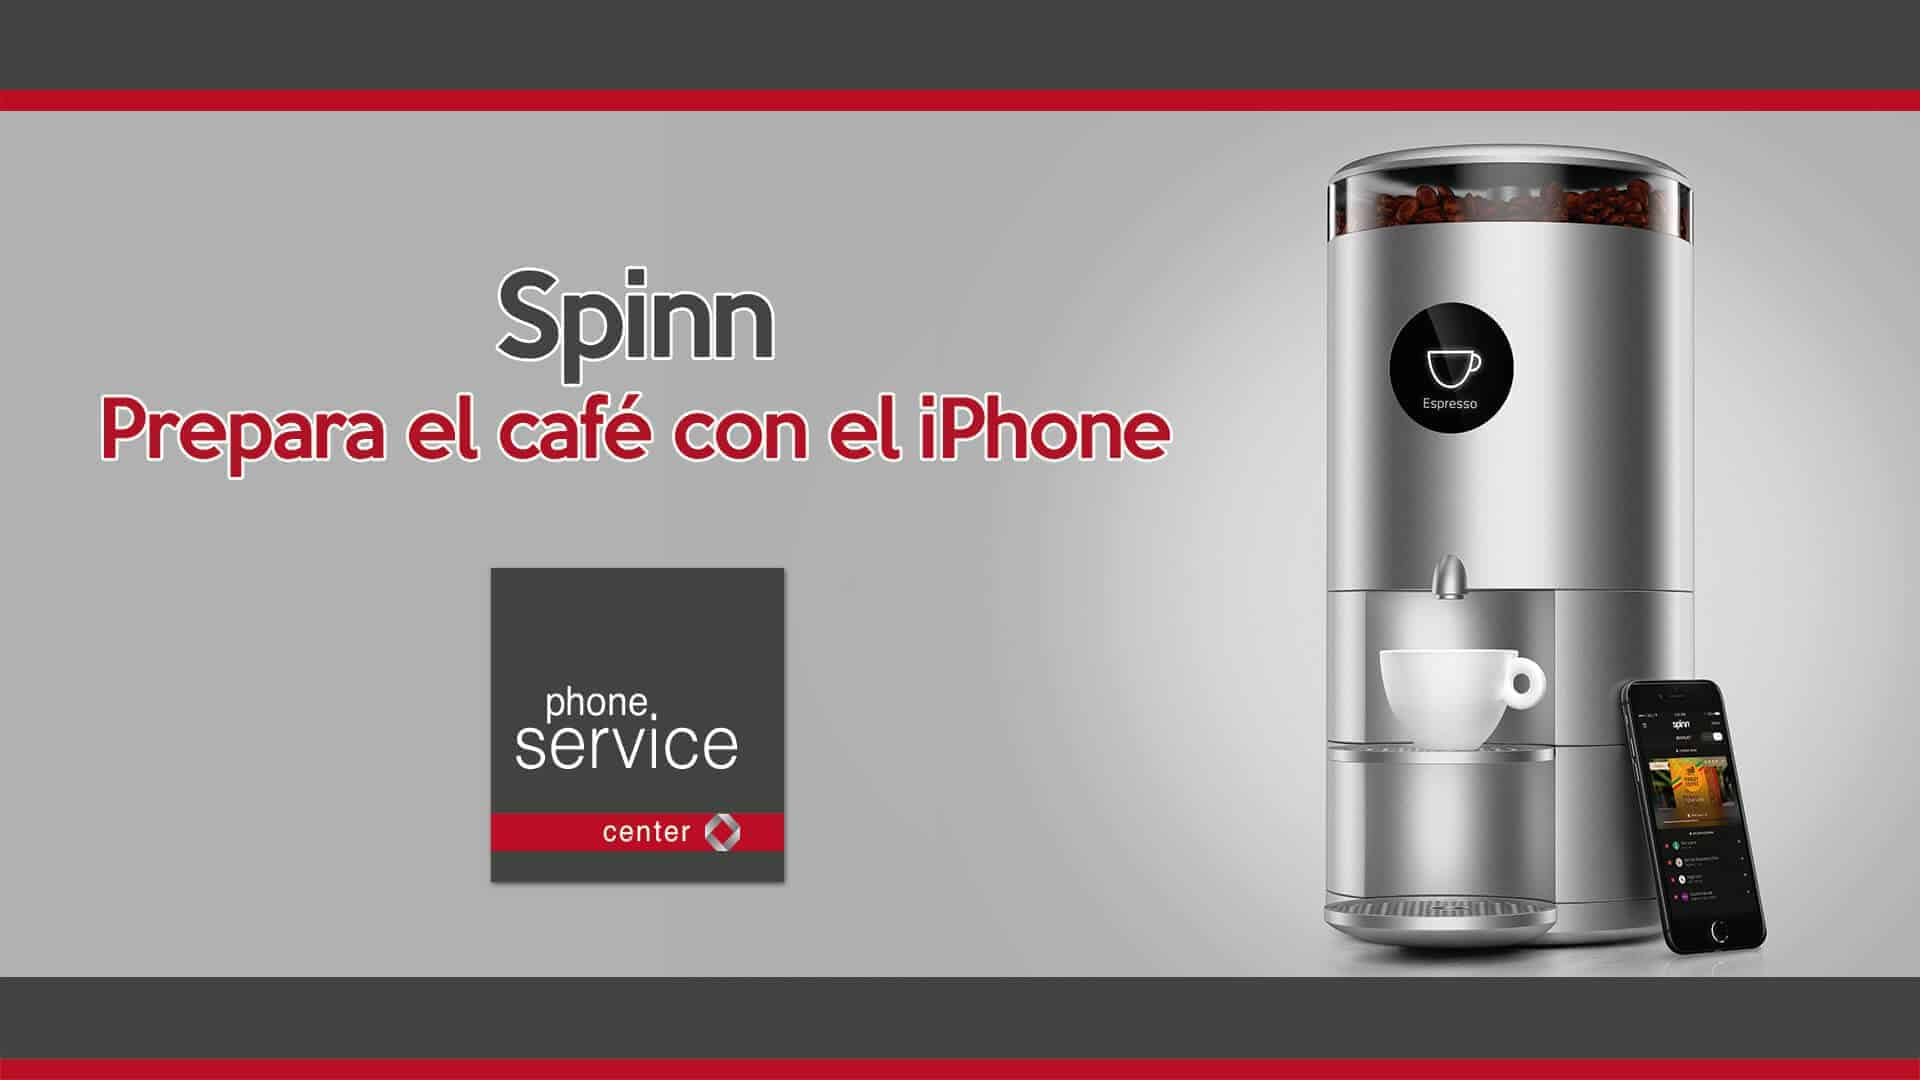 Spinn prepara el cafe con el iPhone